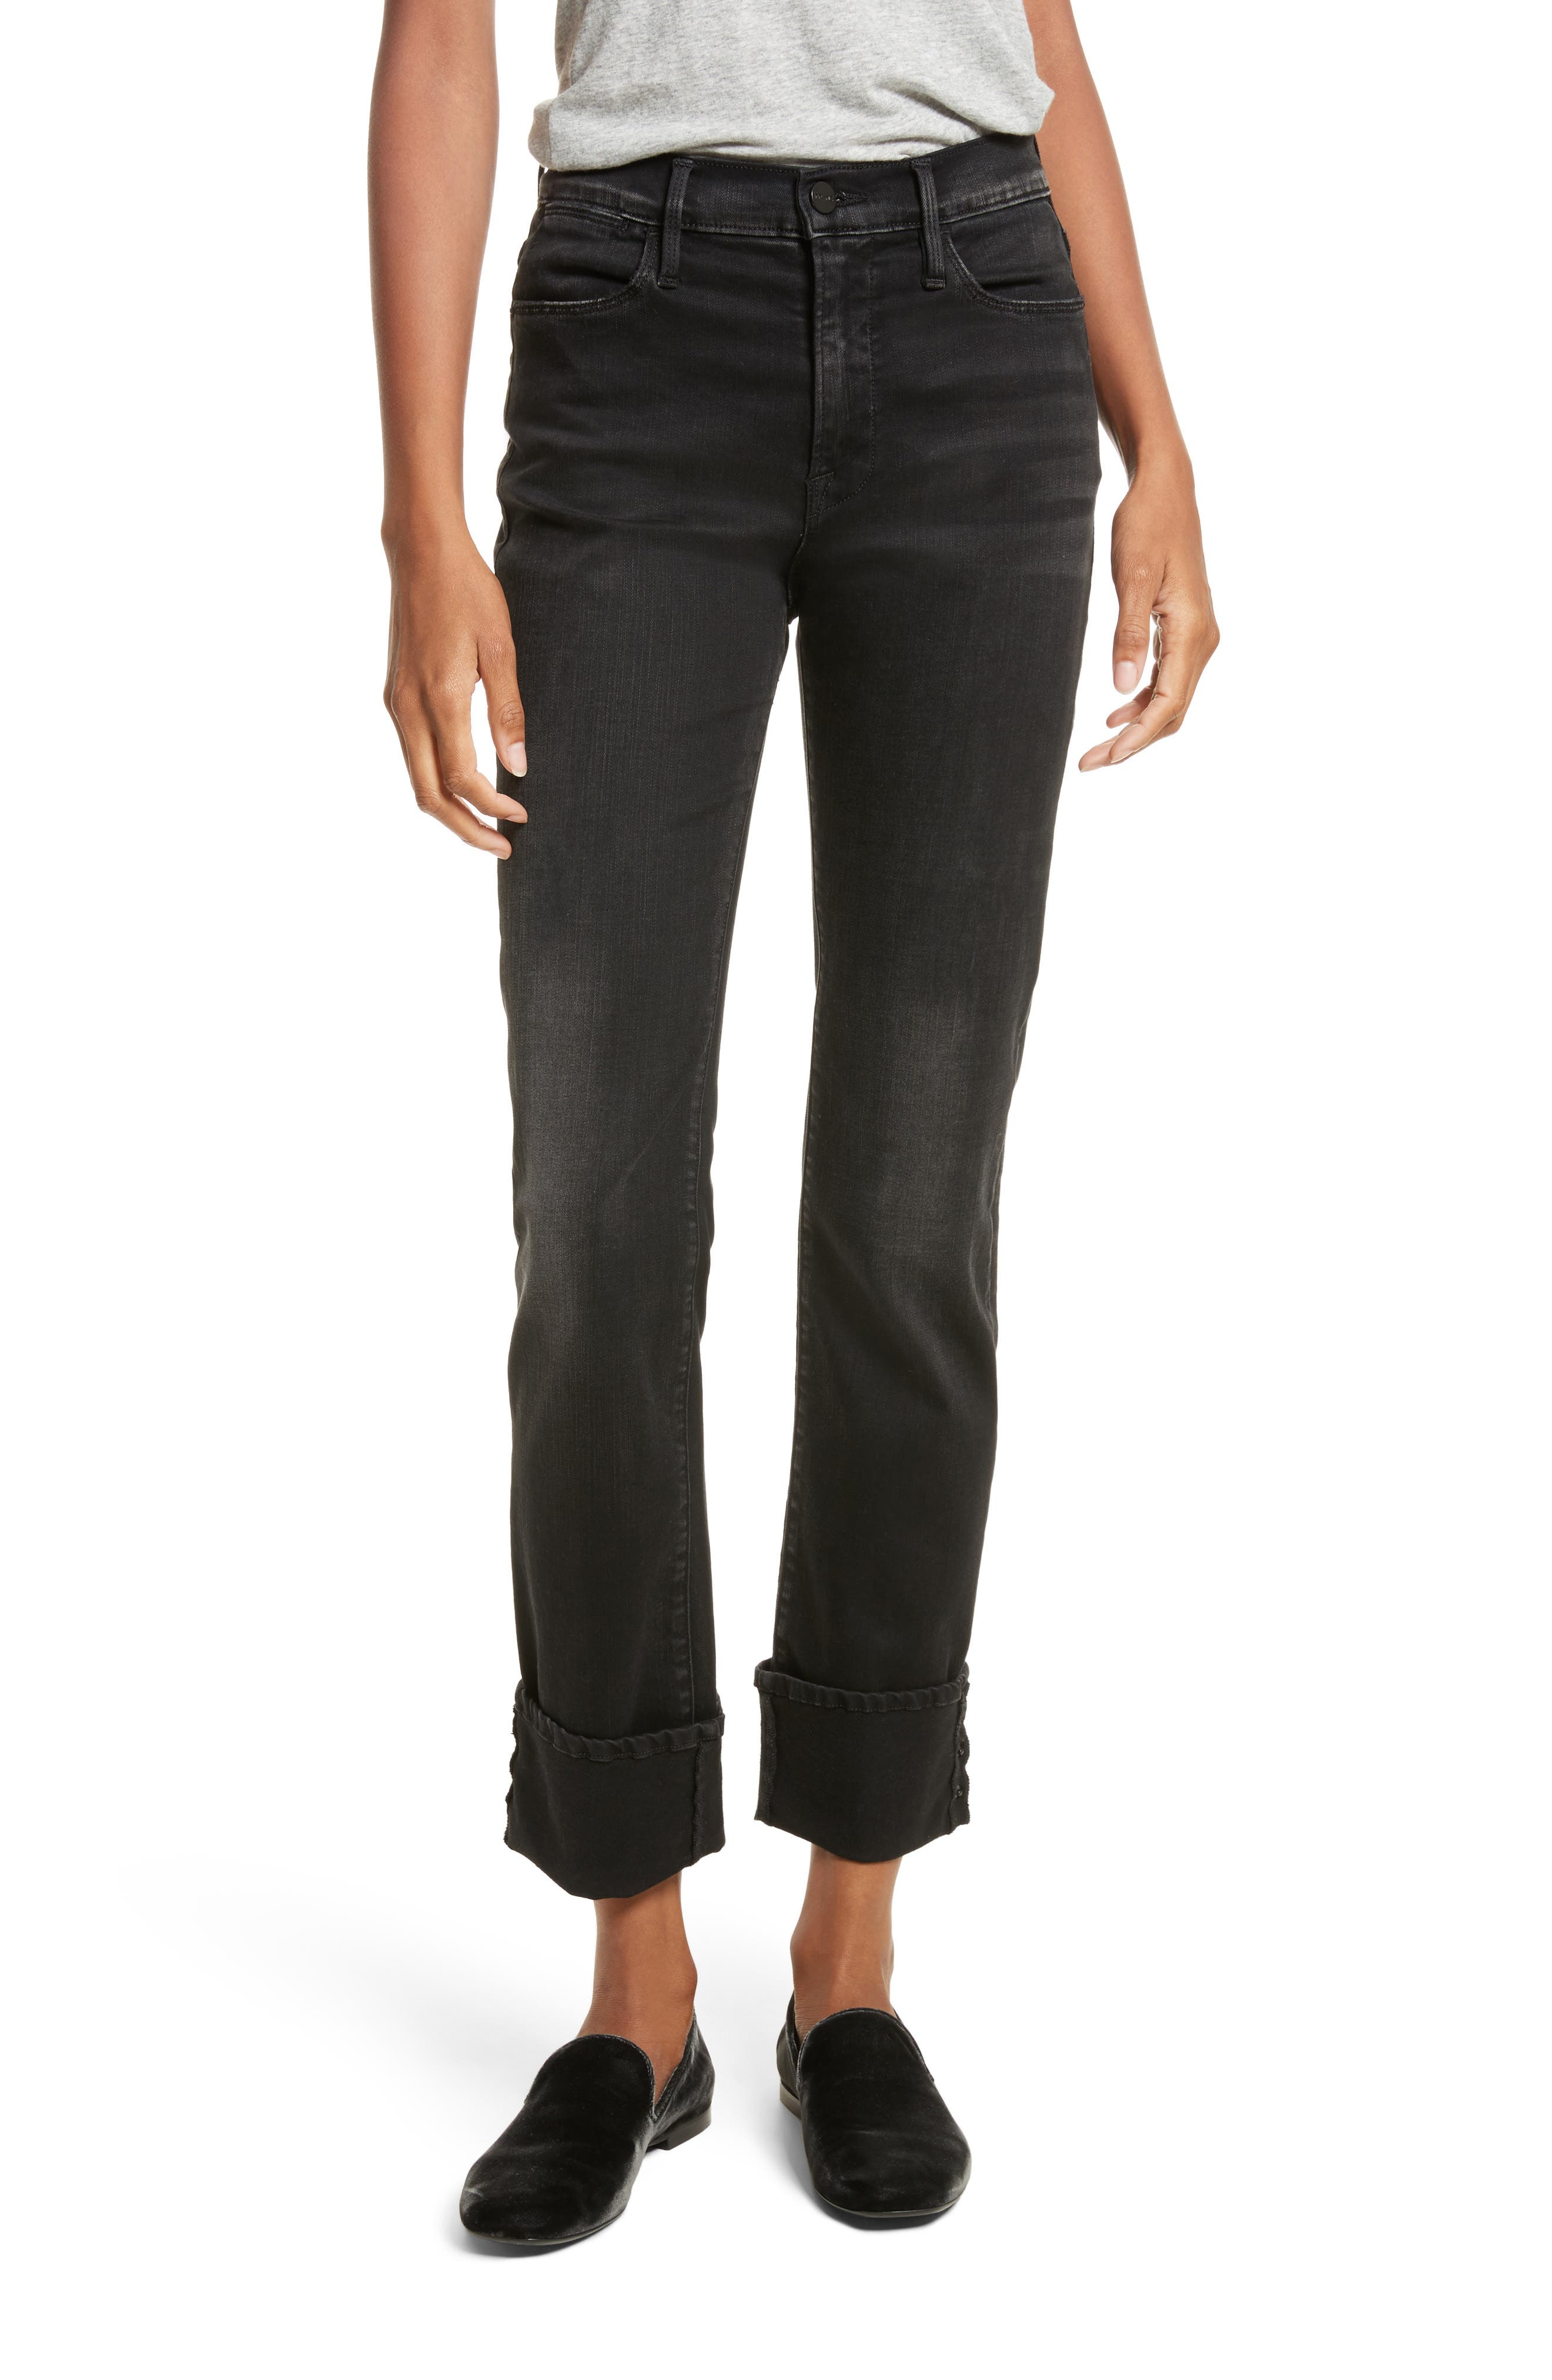 Alternate Image 1 Selected - FRAME Le High Straight Leg Cuffed Jeans (Oxshott)